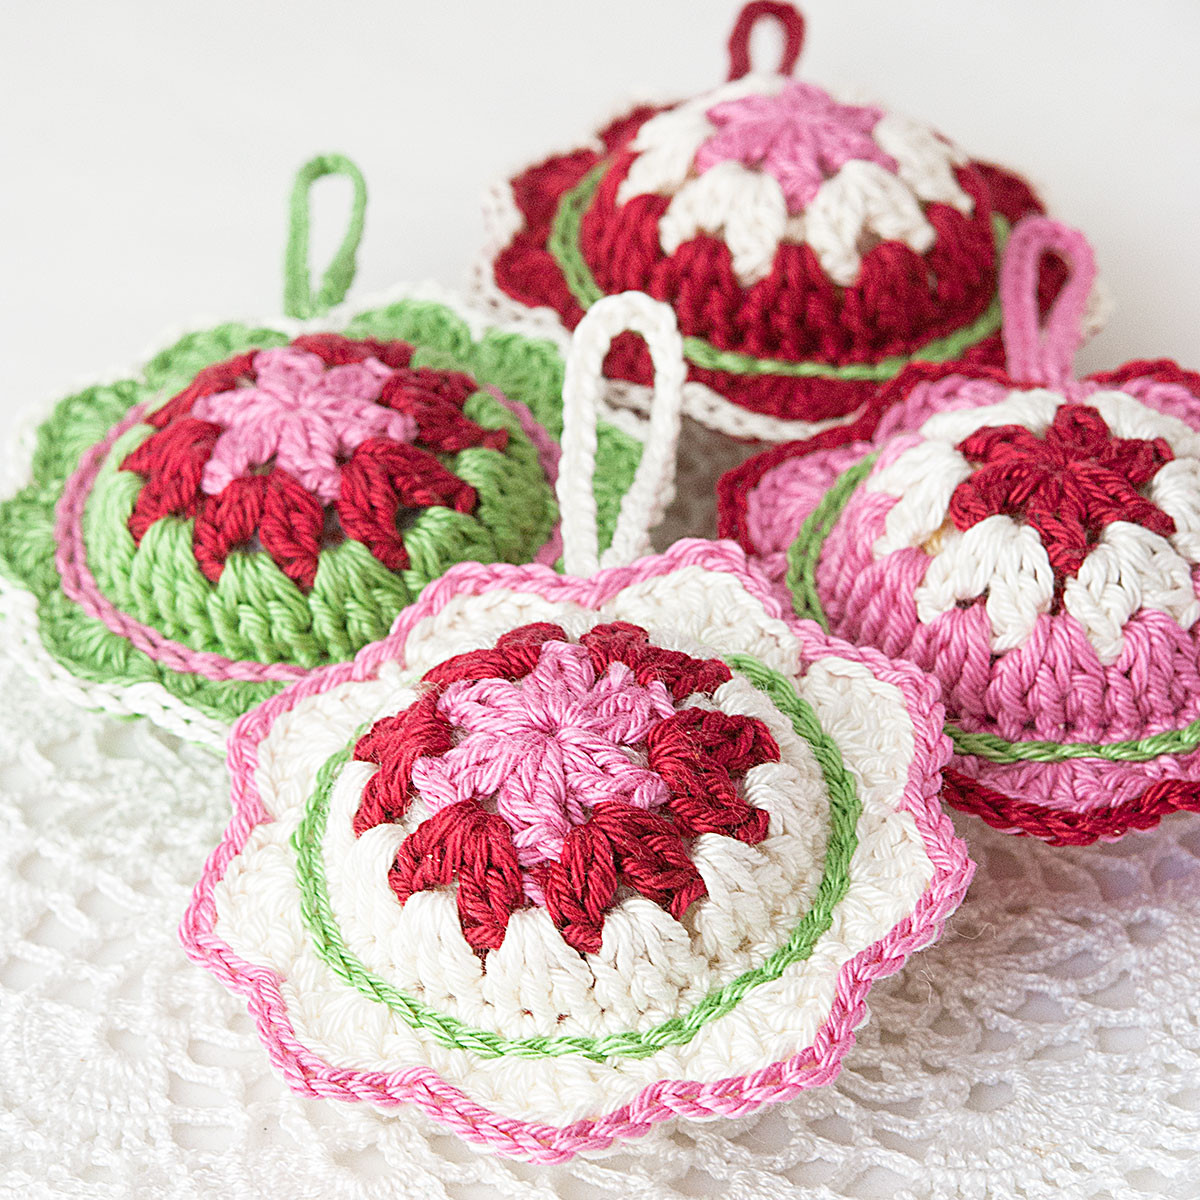 Christmas Crochet Beautiful Anabelia Craft Design New Christmas Crochet ornaments Of Top 46 Pictures Christmas Crochet